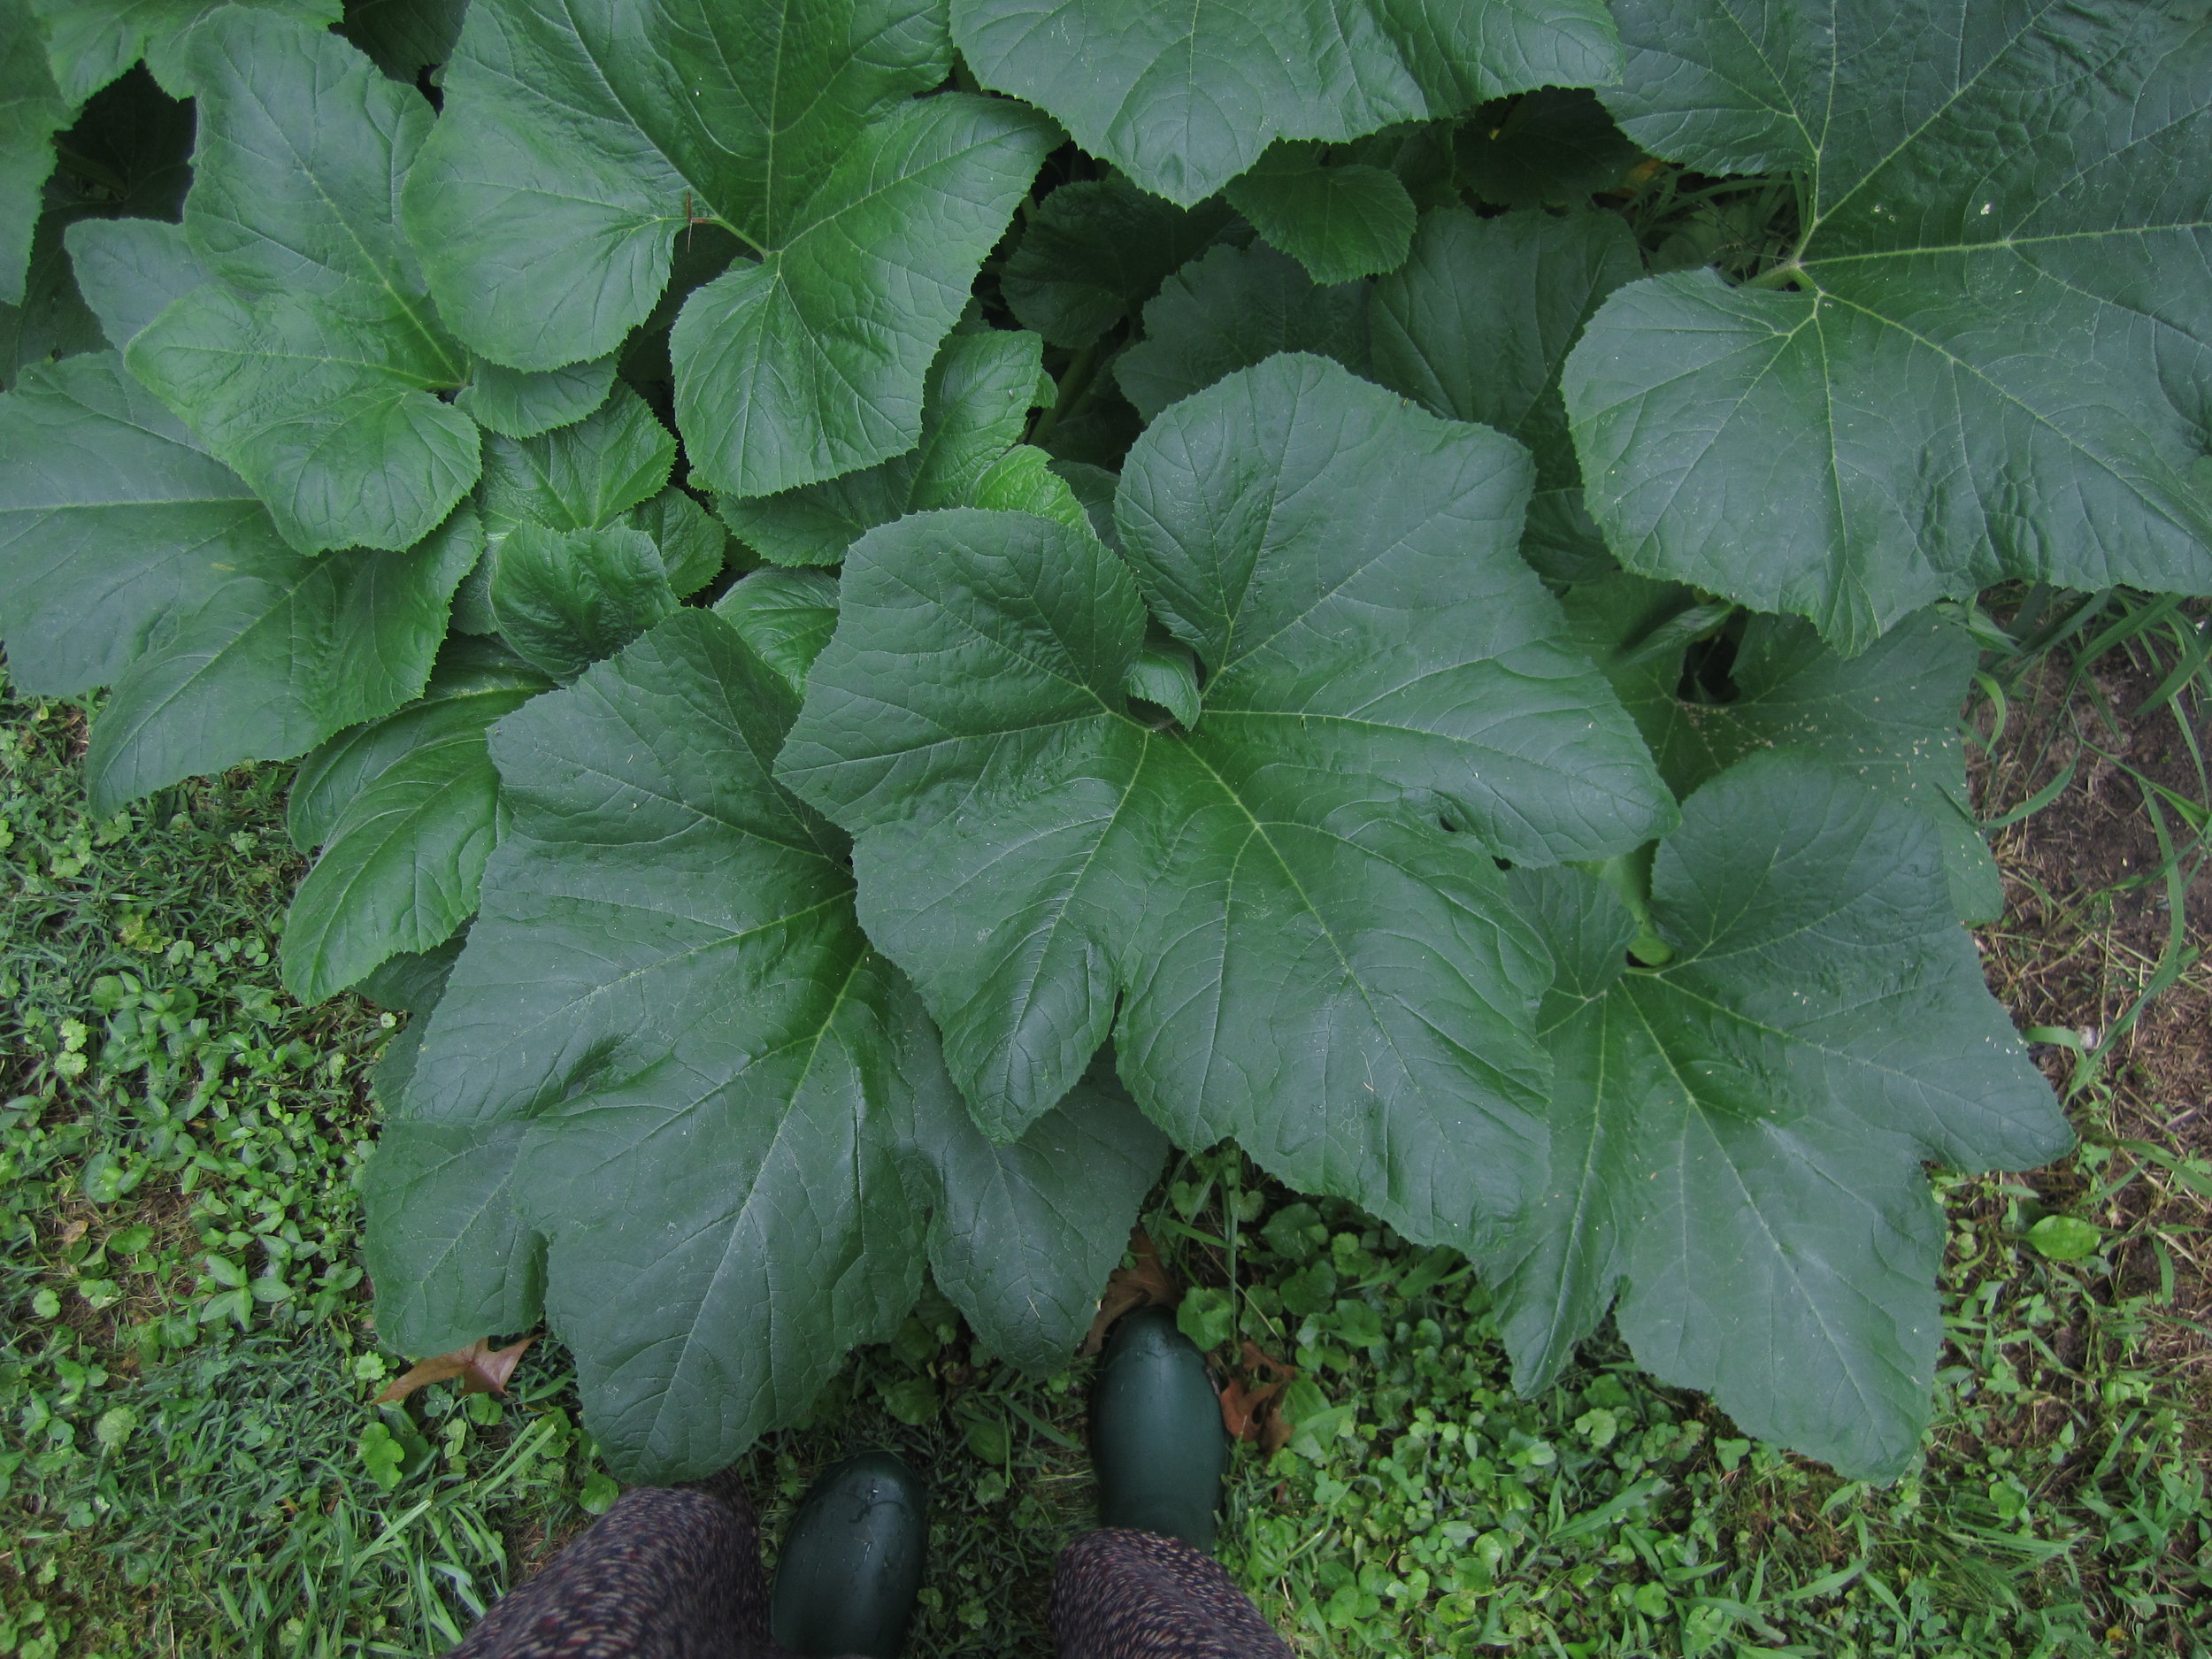 Lush zucchini foliage in late spring. Photo by Brooke.